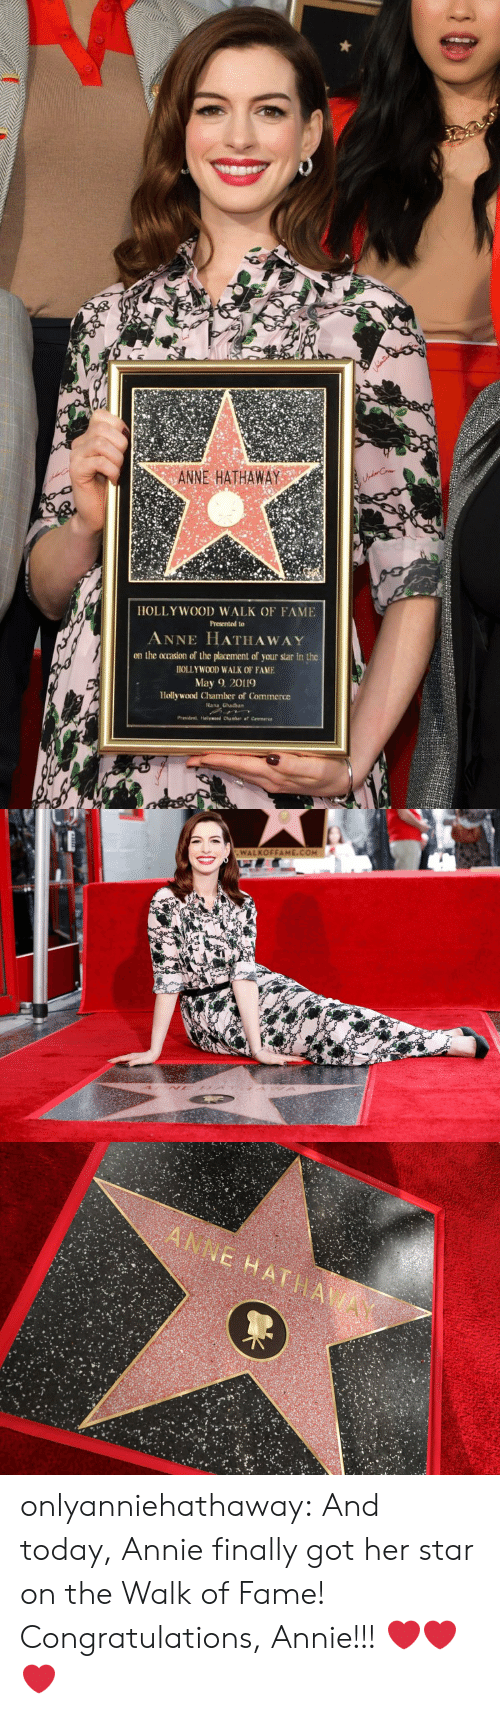 placement: ANNE HATHAWAY  HOLLY WOOD WALK OF FAME  Presented to  ANNE HATHAWAY  on the ocrasion of the placement of your star in the  HOLLYWOOD WALK OF FAME  May 2019  Hollywood Chamber of Commerce  ana Ghadban   WALKOFFAME.COM onlyanniehathaway:  And today, Annie finally got her star on the Walk of Fame! Congratulations, Annie!!!  ❤️❤️❤️